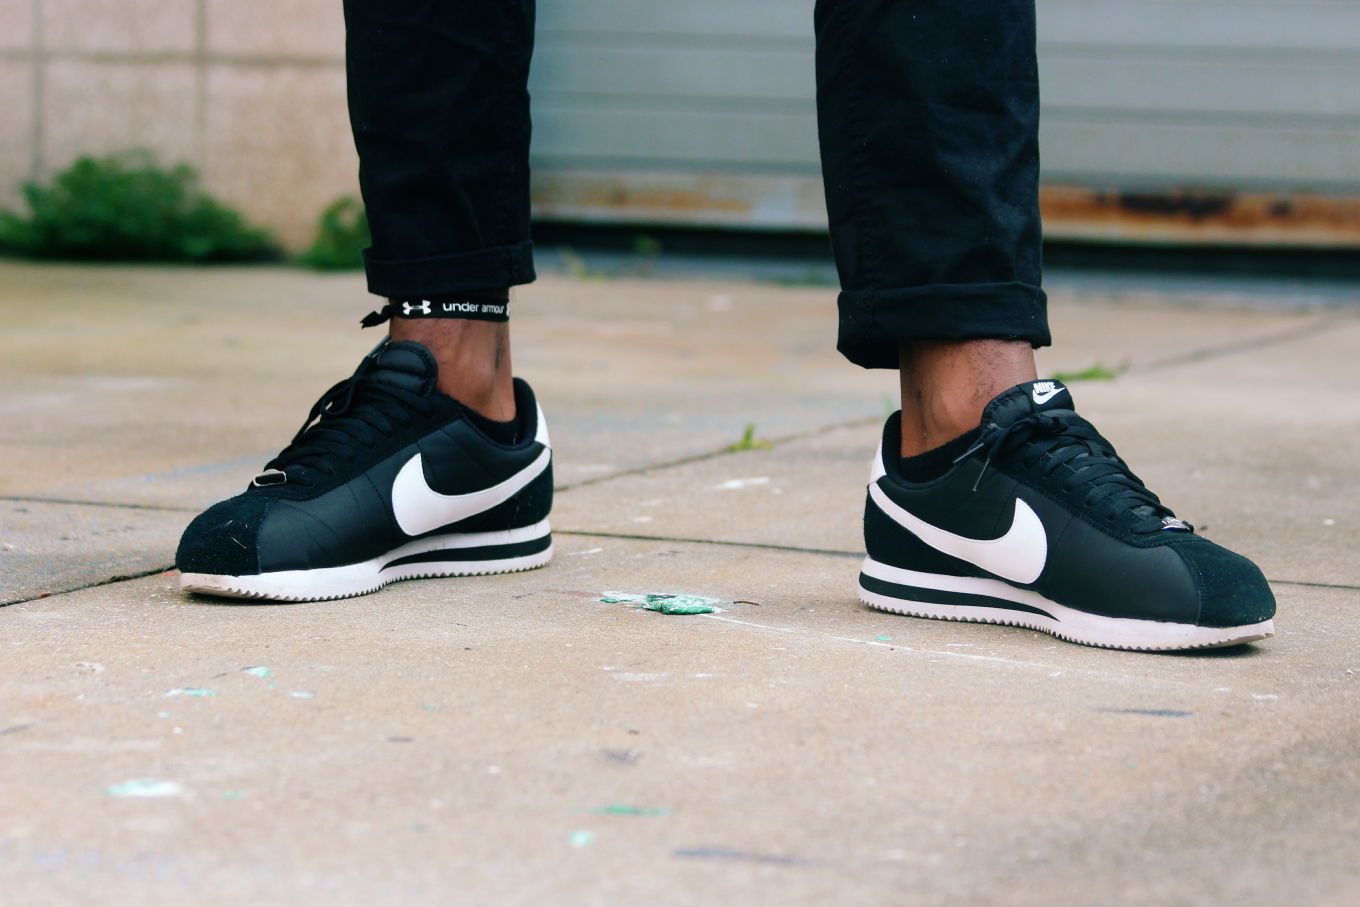 white Nike Cortez lace up sneakers